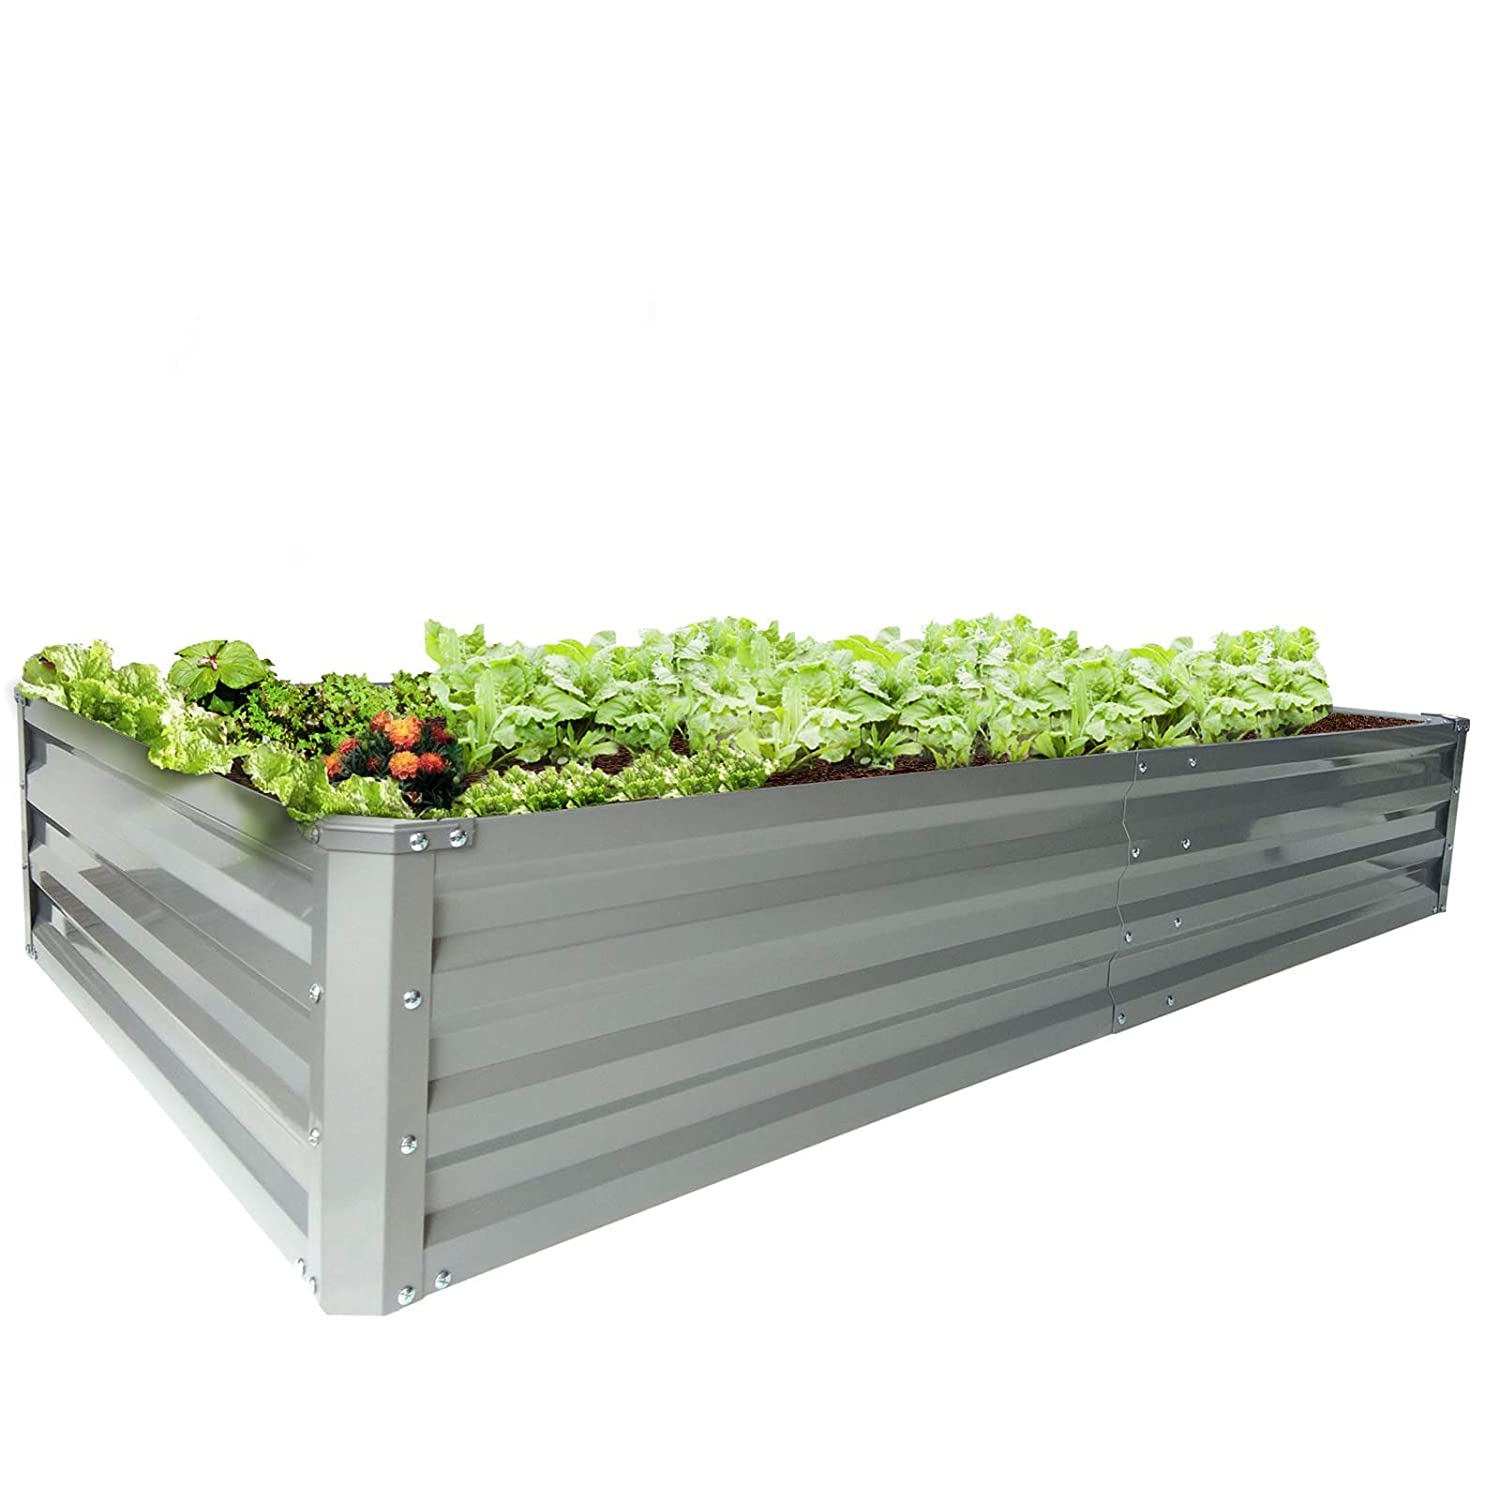 Buy Zizin Galvanized Raised Garden Beds Metal Elevated Planter Box Steel Large Vegetable Flower Bed Kit 6 Aƒa 3 Aƒa 1 Ft Online At Low Prices In India Amazon In